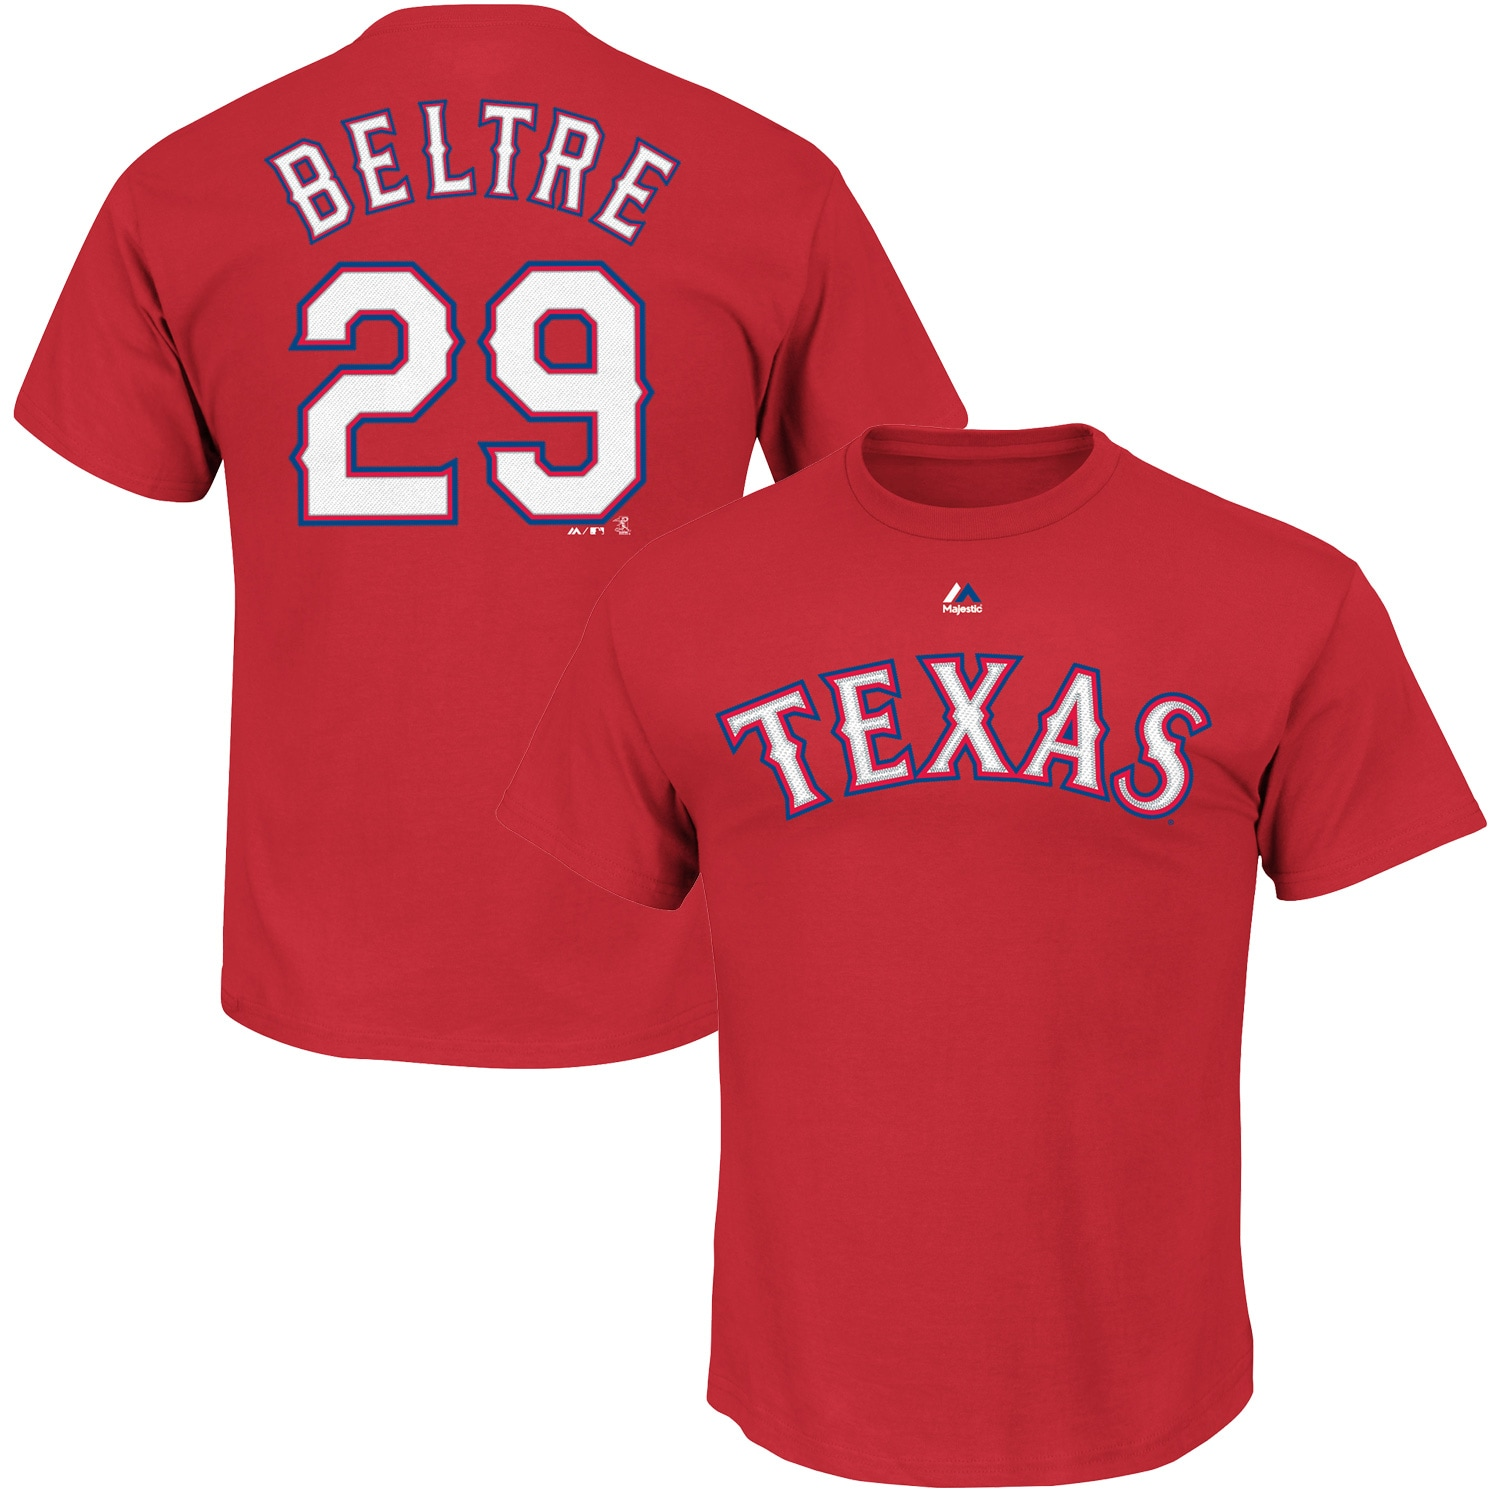 Adrian Beltre Texas Rangers Majestic Big & Tall Official Player T-Shirt - Red